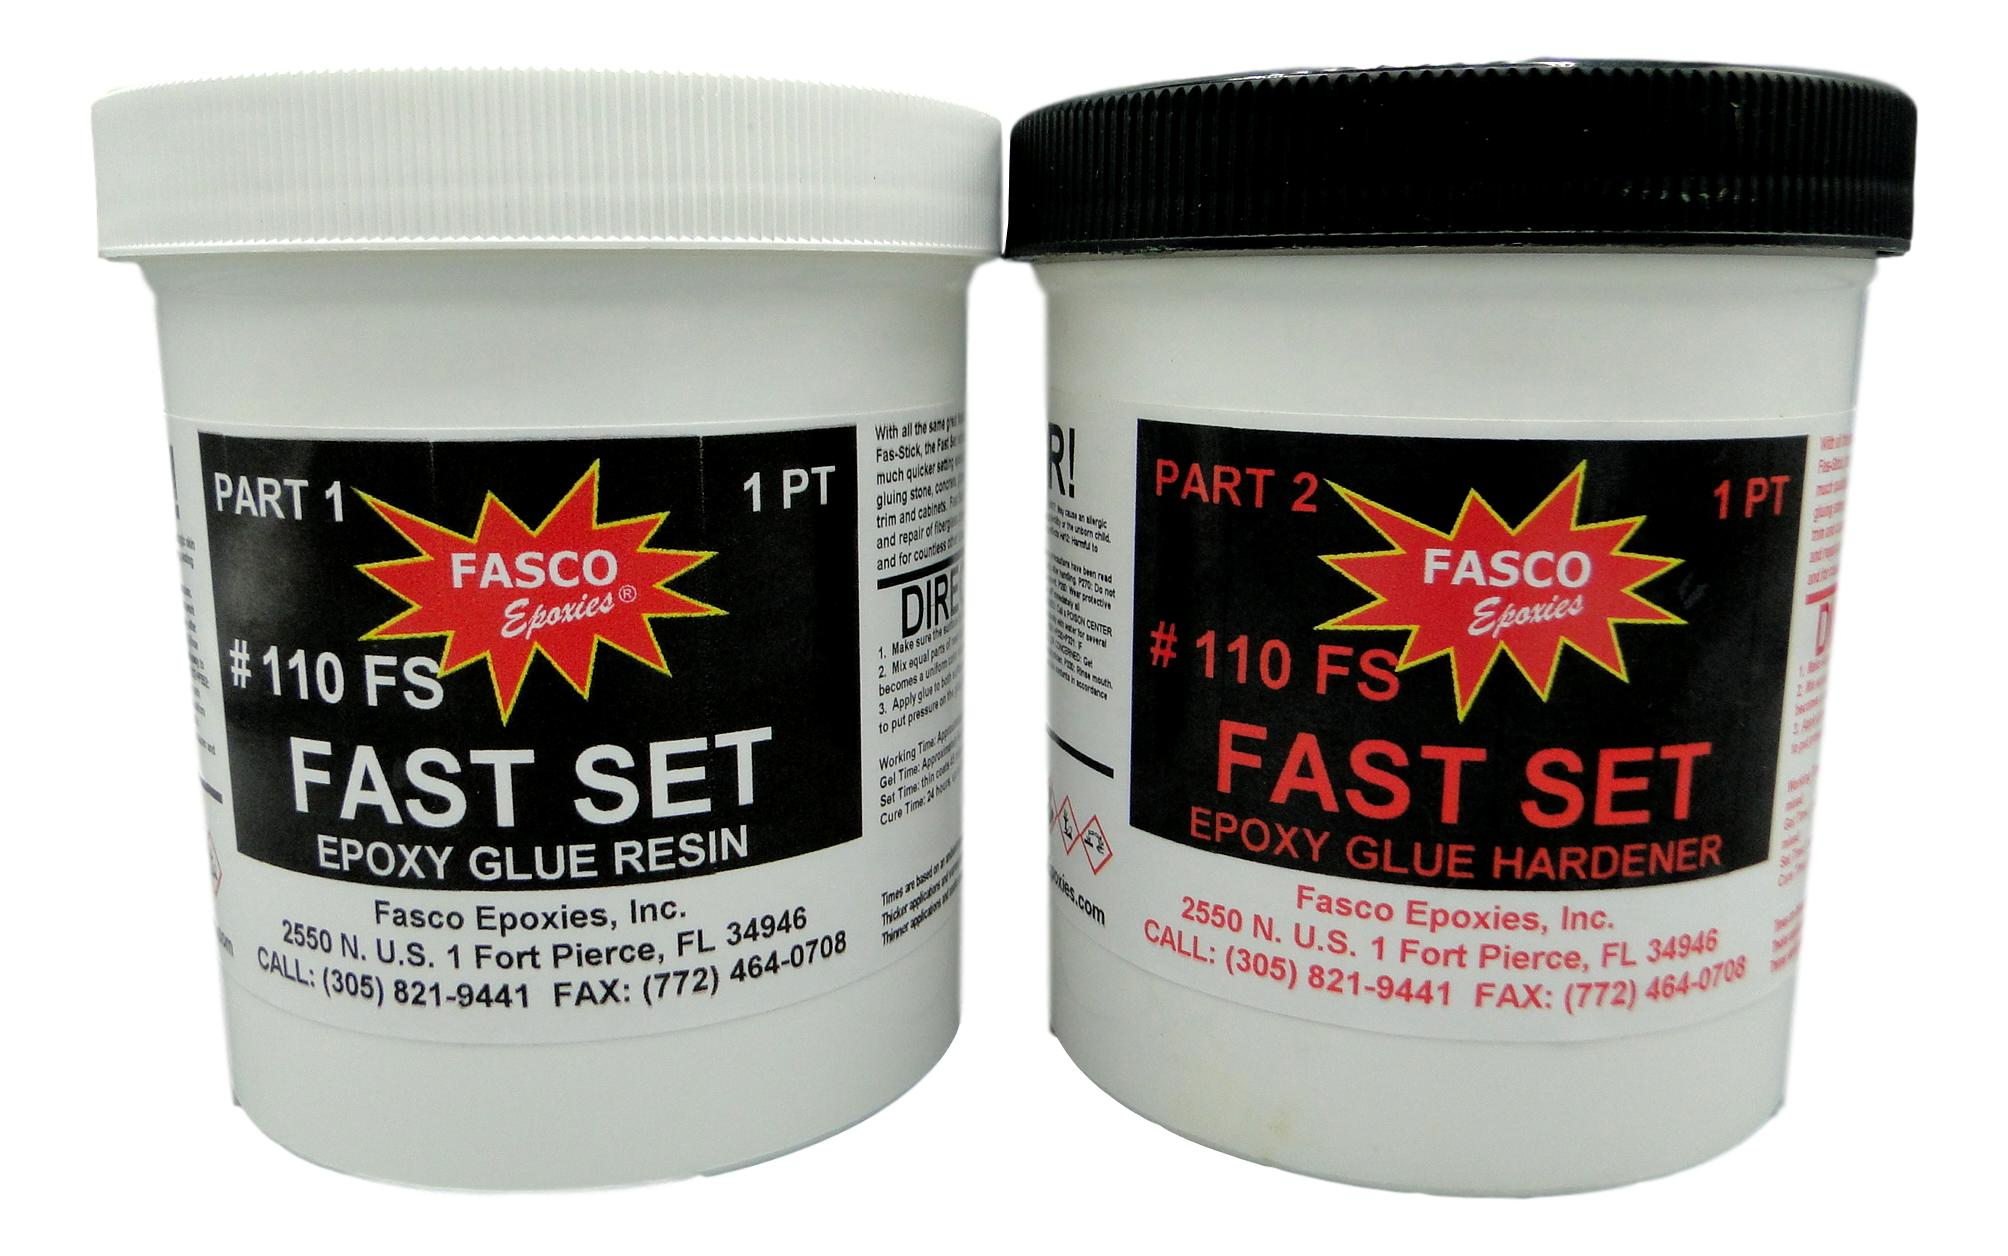 Fasco 110 Fast Set Epoxy Glue